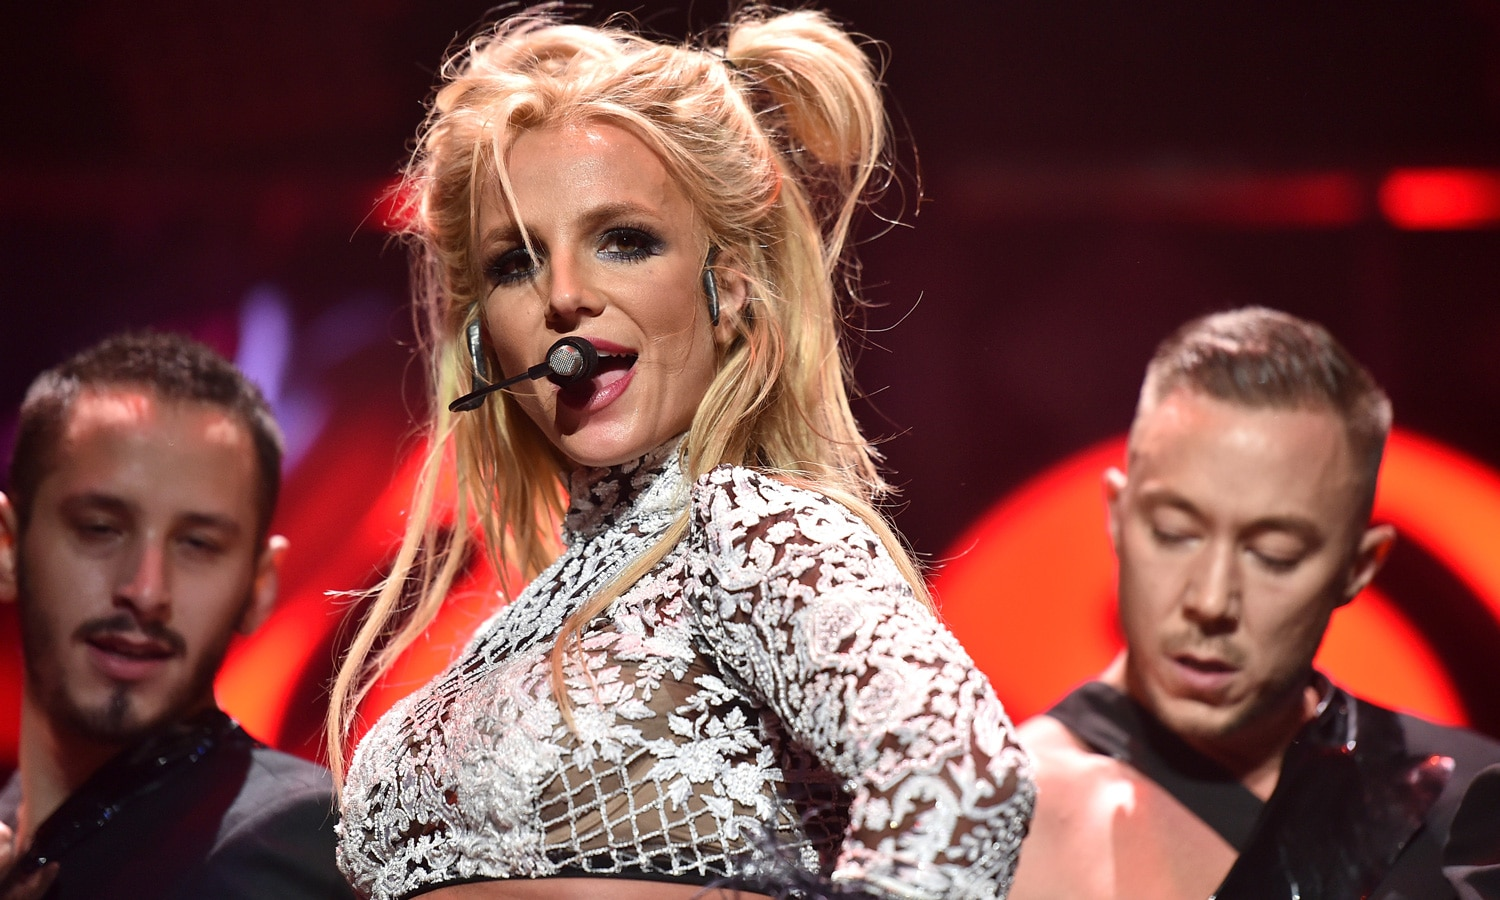 Does Britney Spears Smoke Weed?